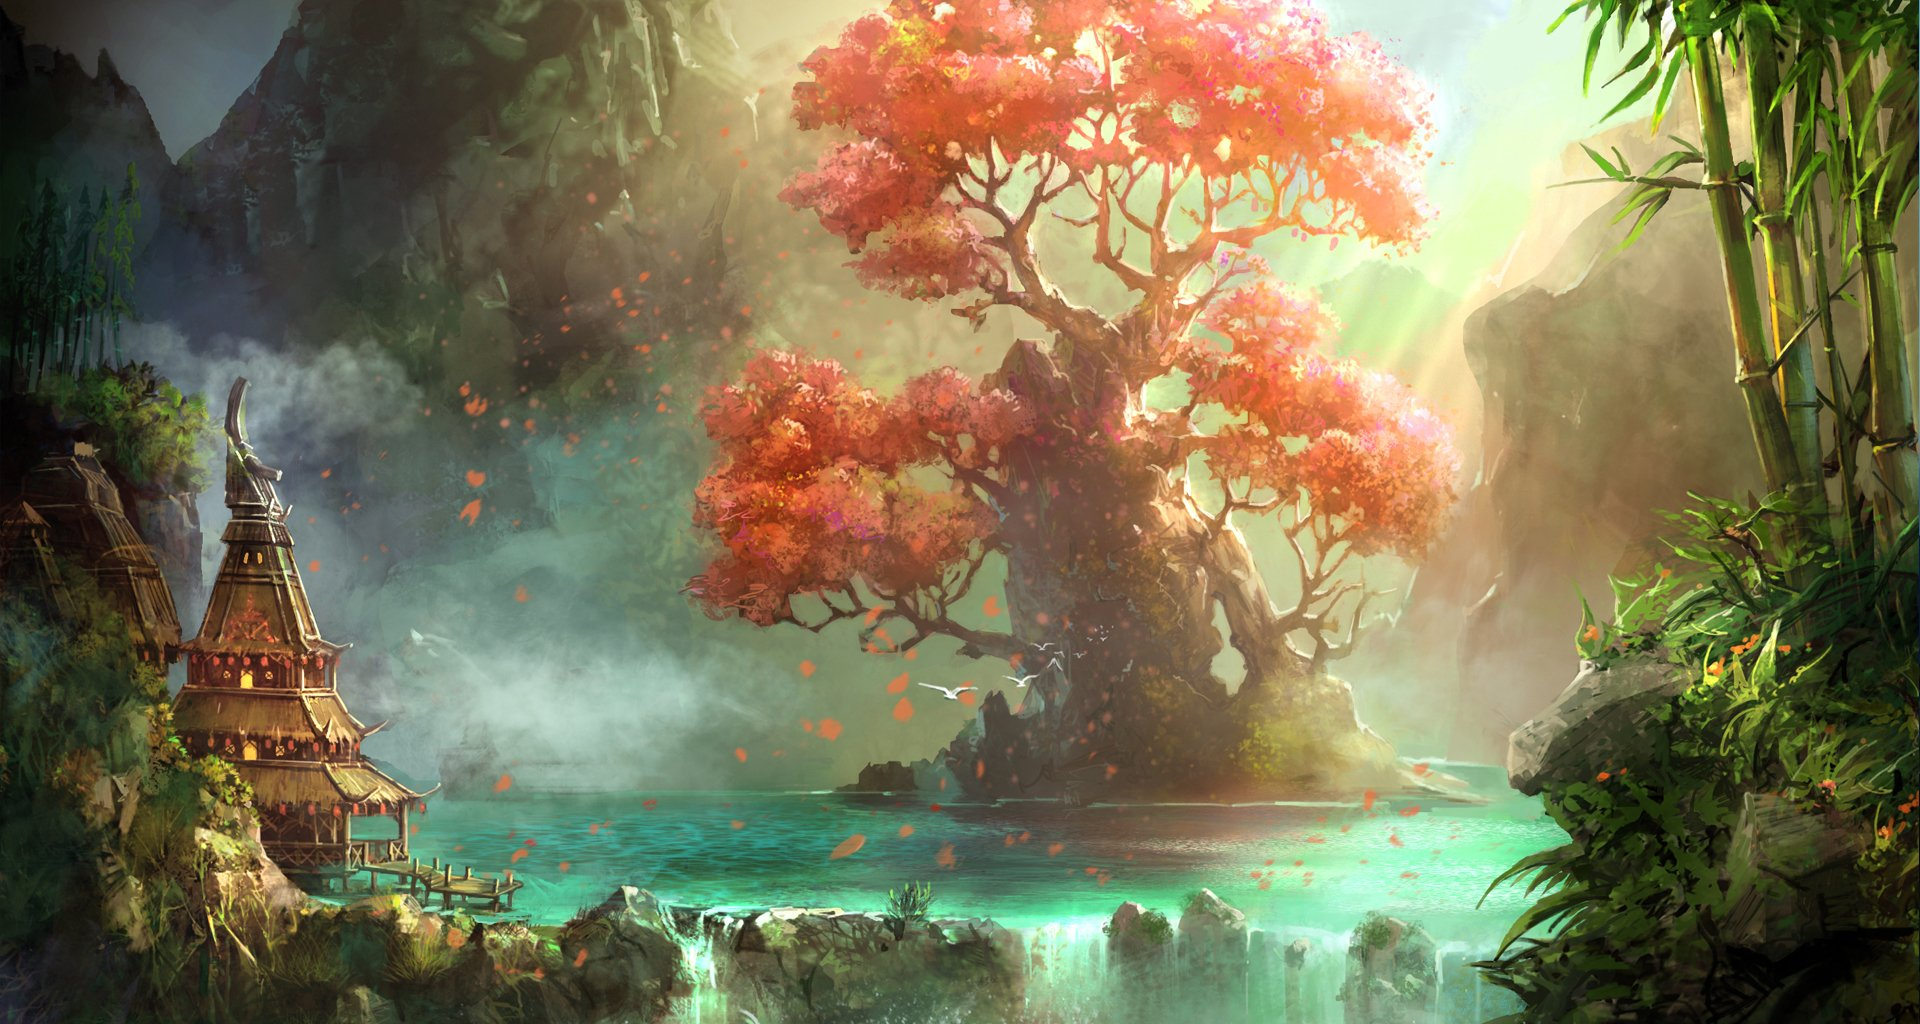 Tree of knowledge wallpaper and background image - Fantasy scenery wallpaper ...